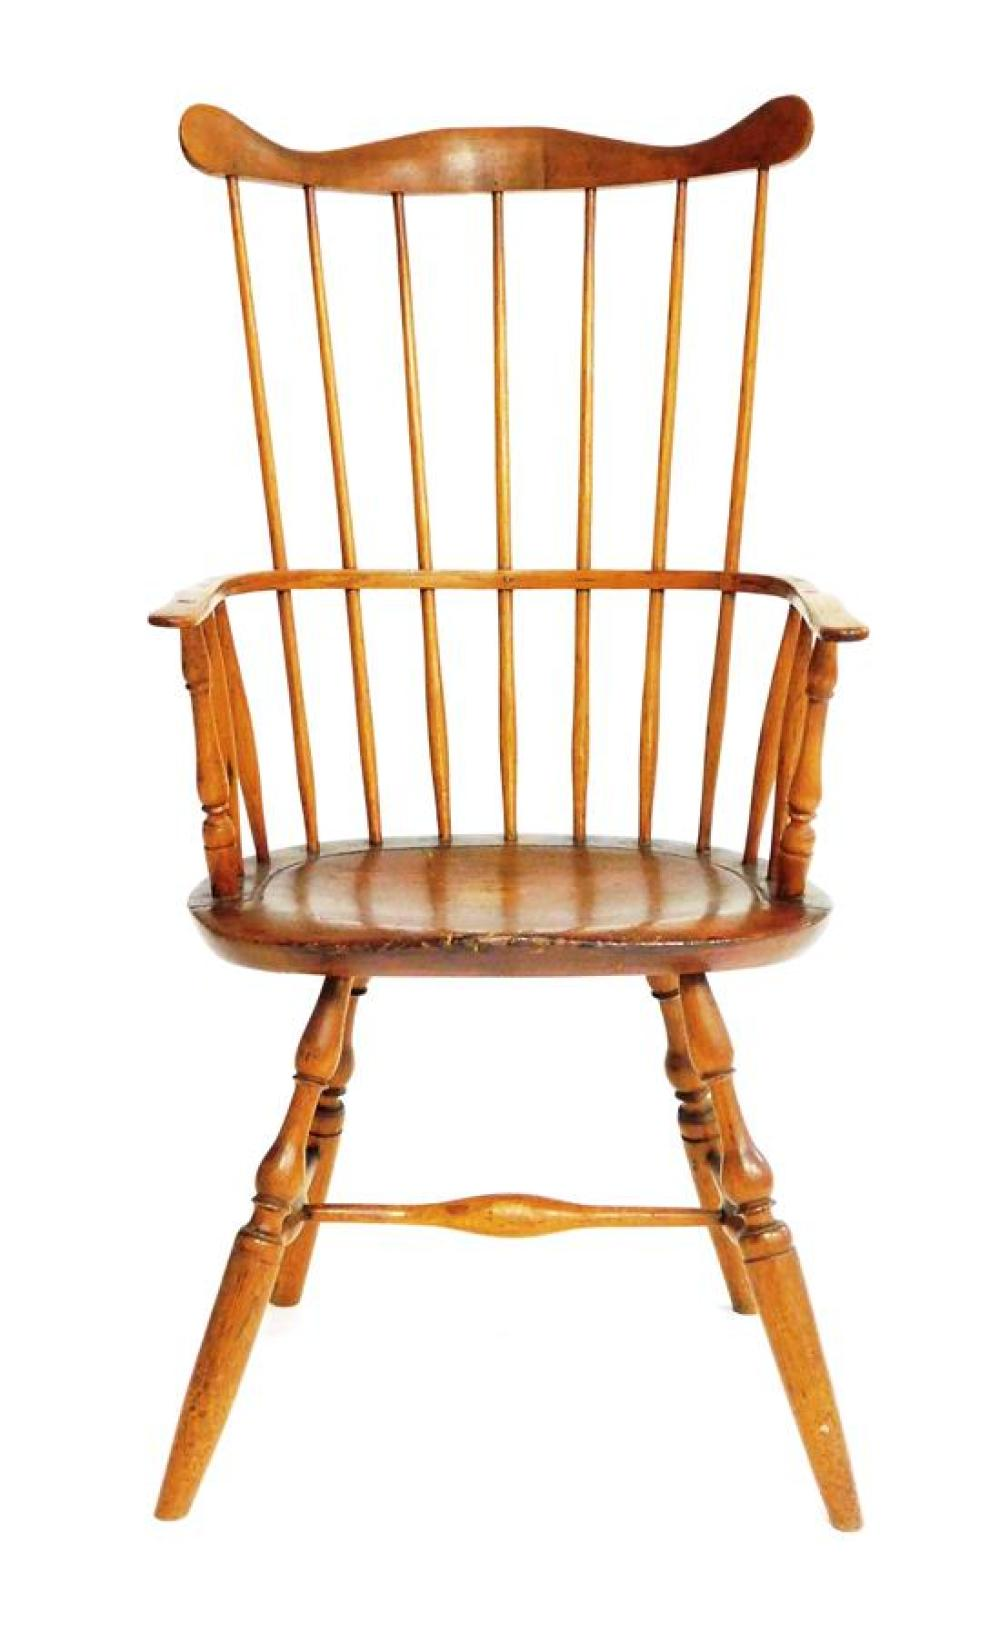 Windsor high comb back armchair, New England, c. 1770, serpentine crest over seven spindle back, continuous arm rail with turned vas...